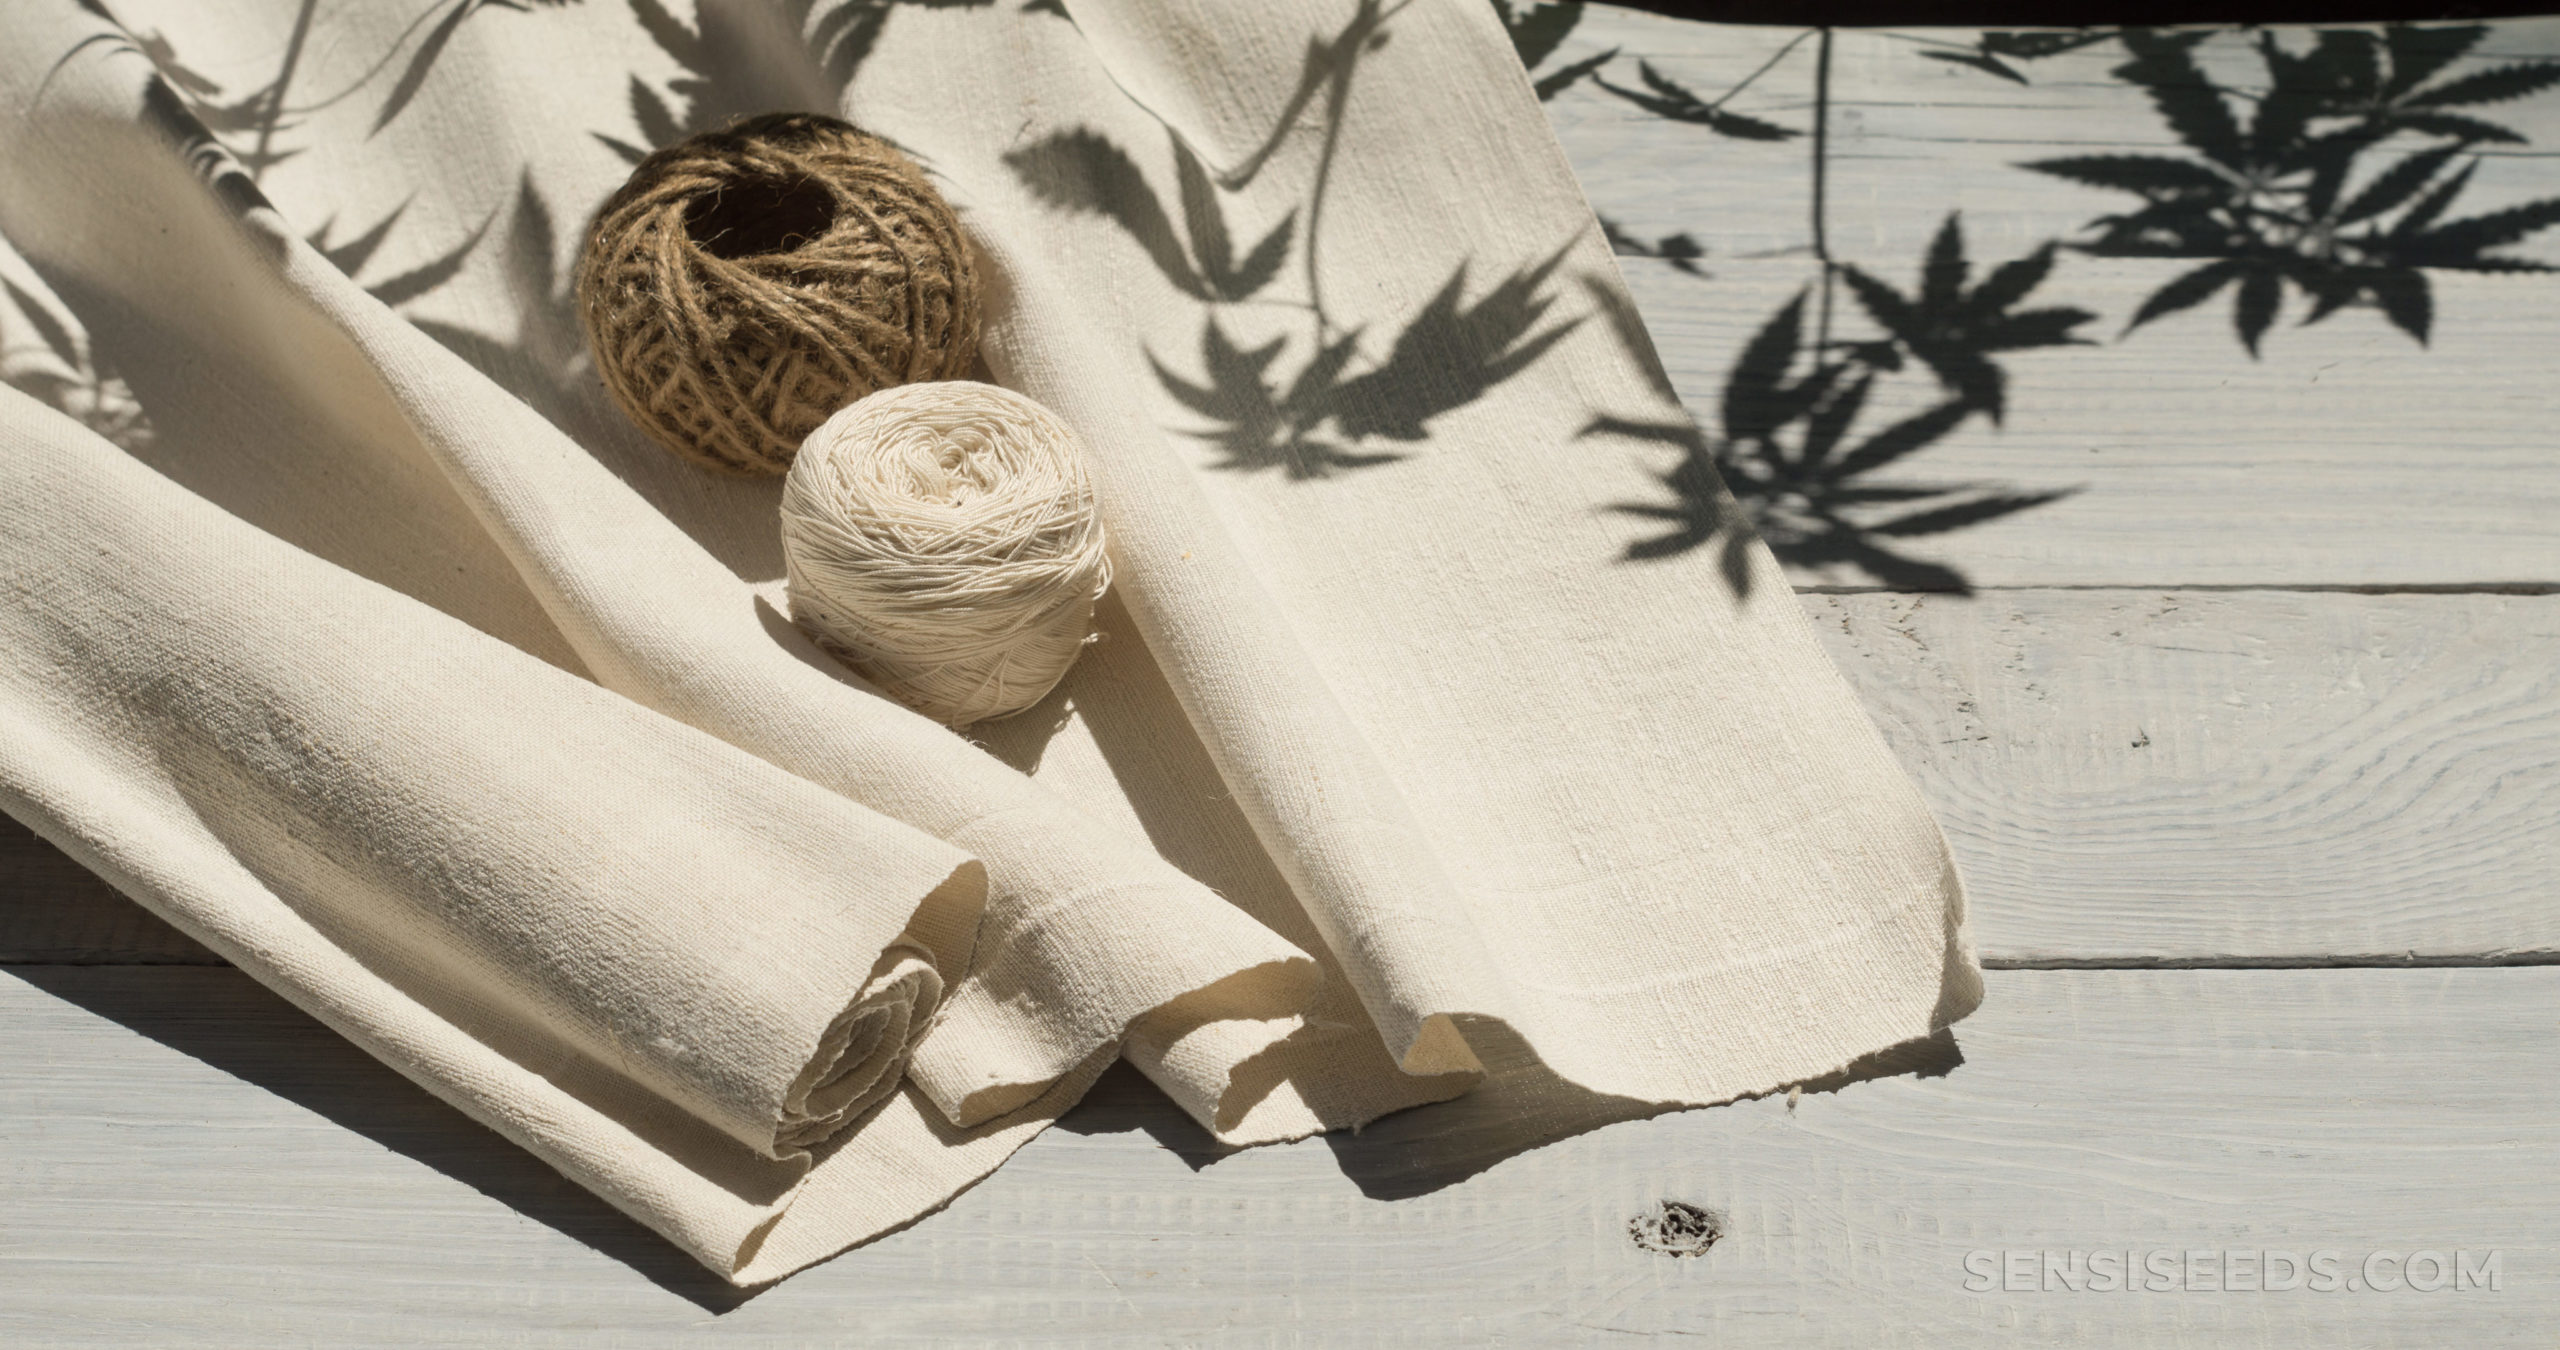 Production of Clothes by Hemp Fiber